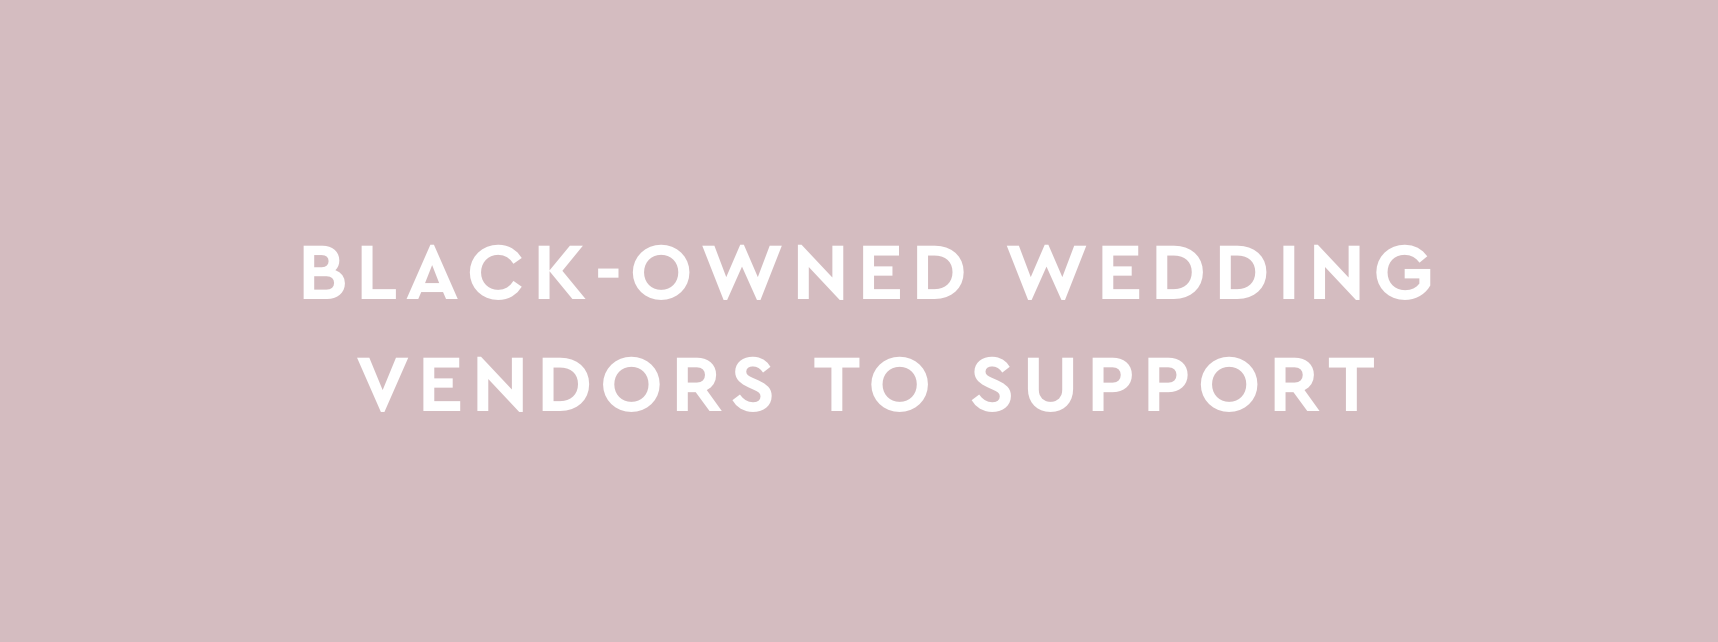 Black-Owned Wedding Vendors to Support